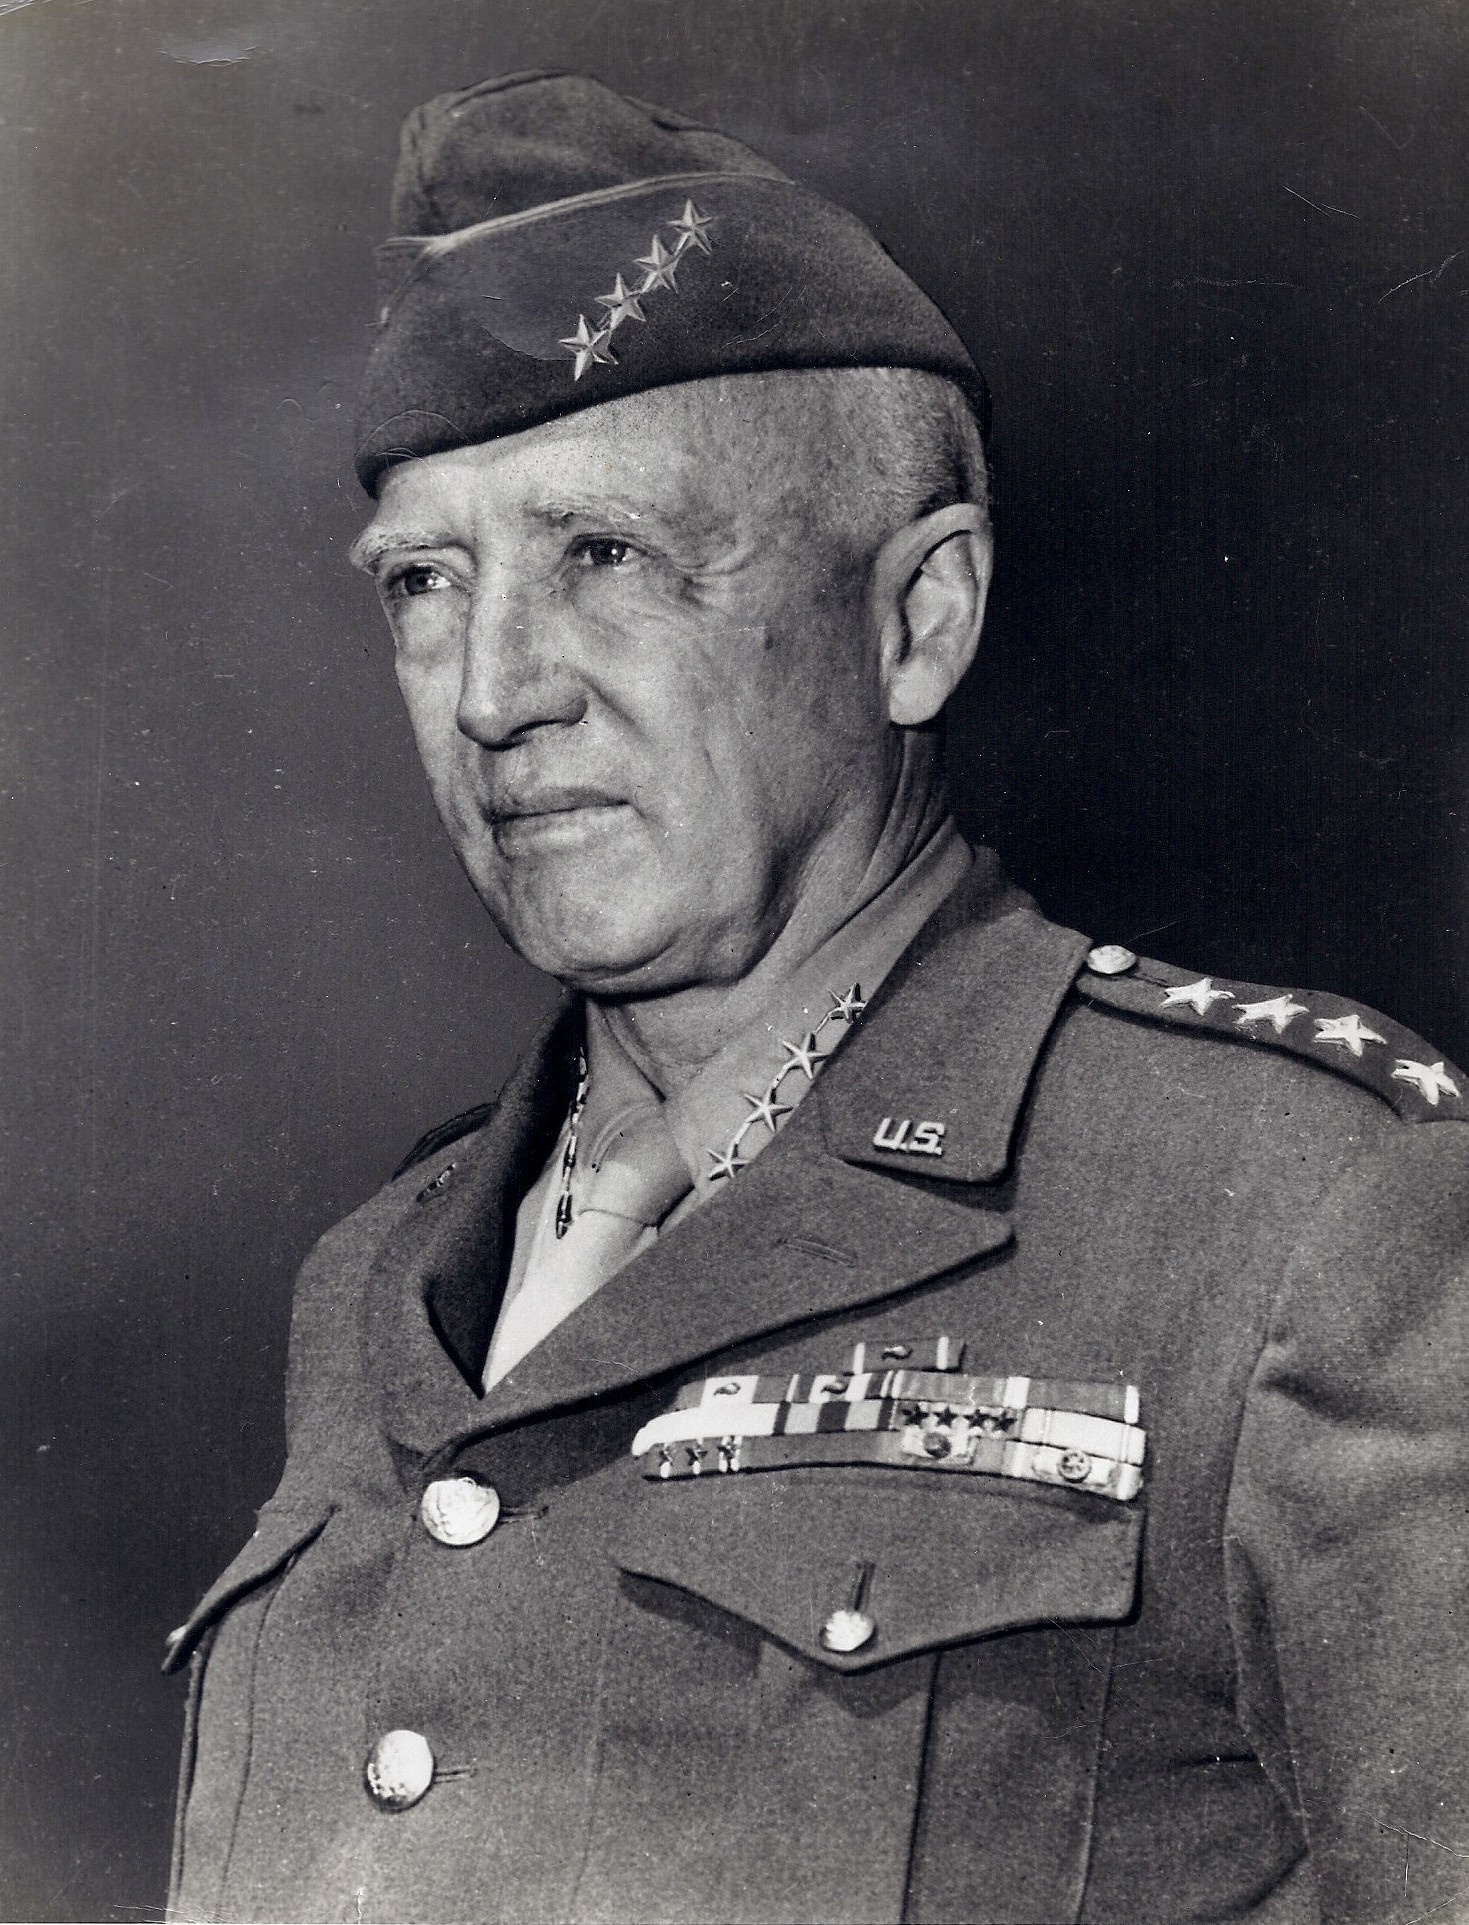 Photograph of General George Smith Patton, Junior in full military uniform and vice-cap bearing his four stars